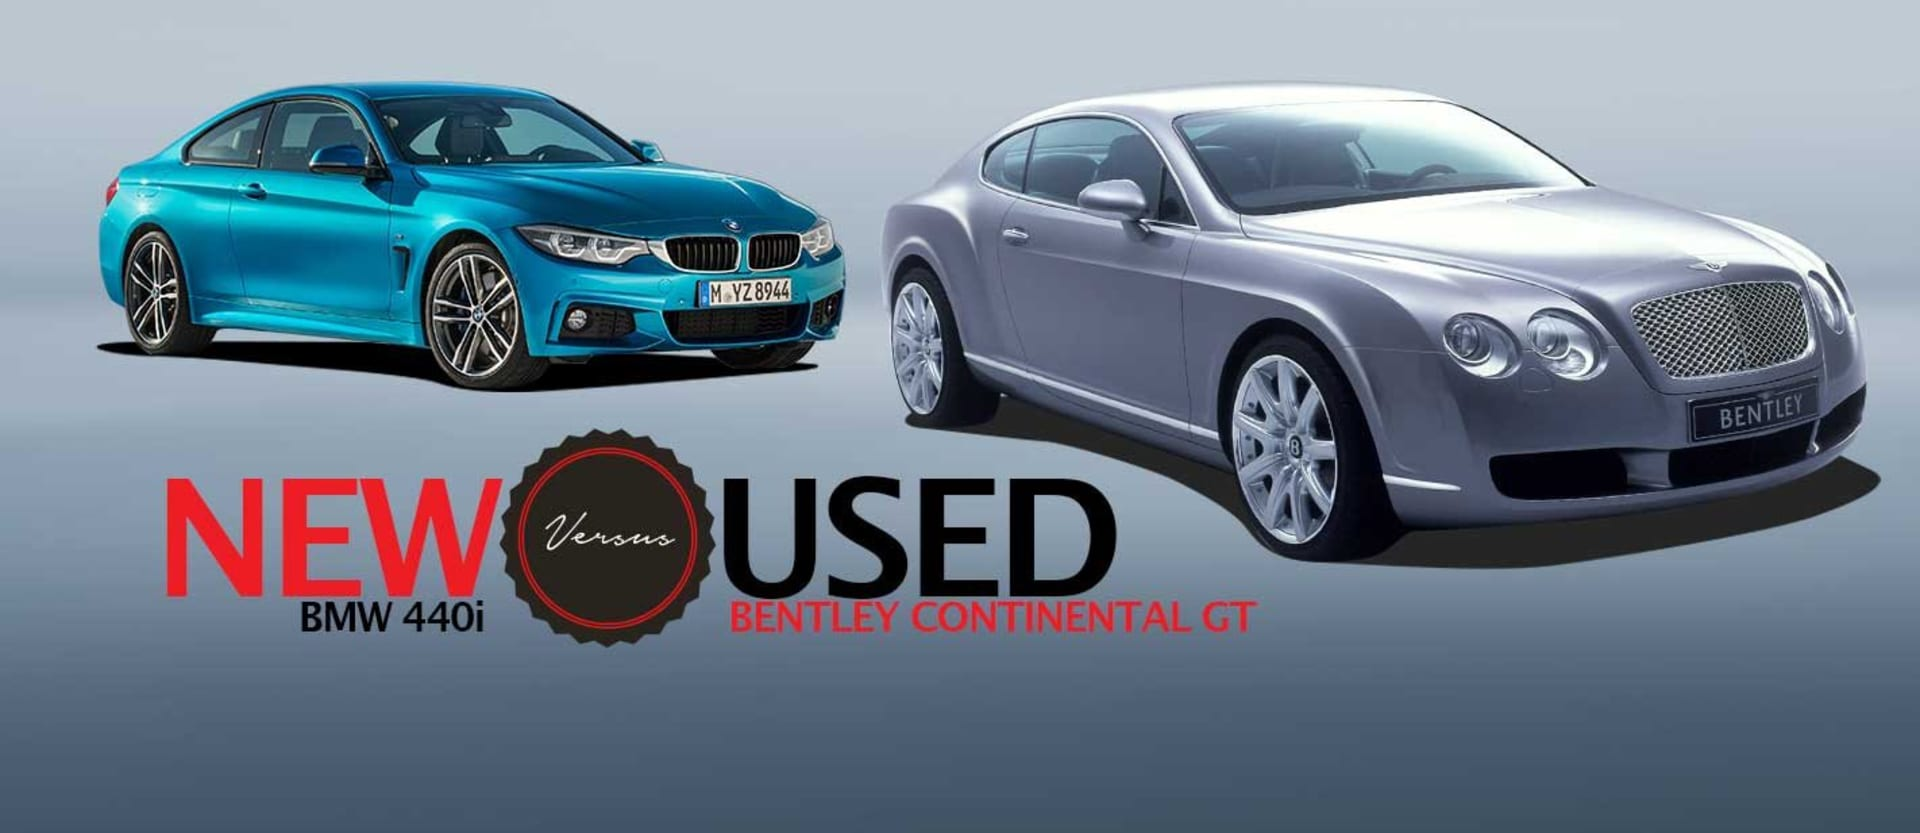 2019 BMW 440i vs 2005 Bentley Continental GT new vs used